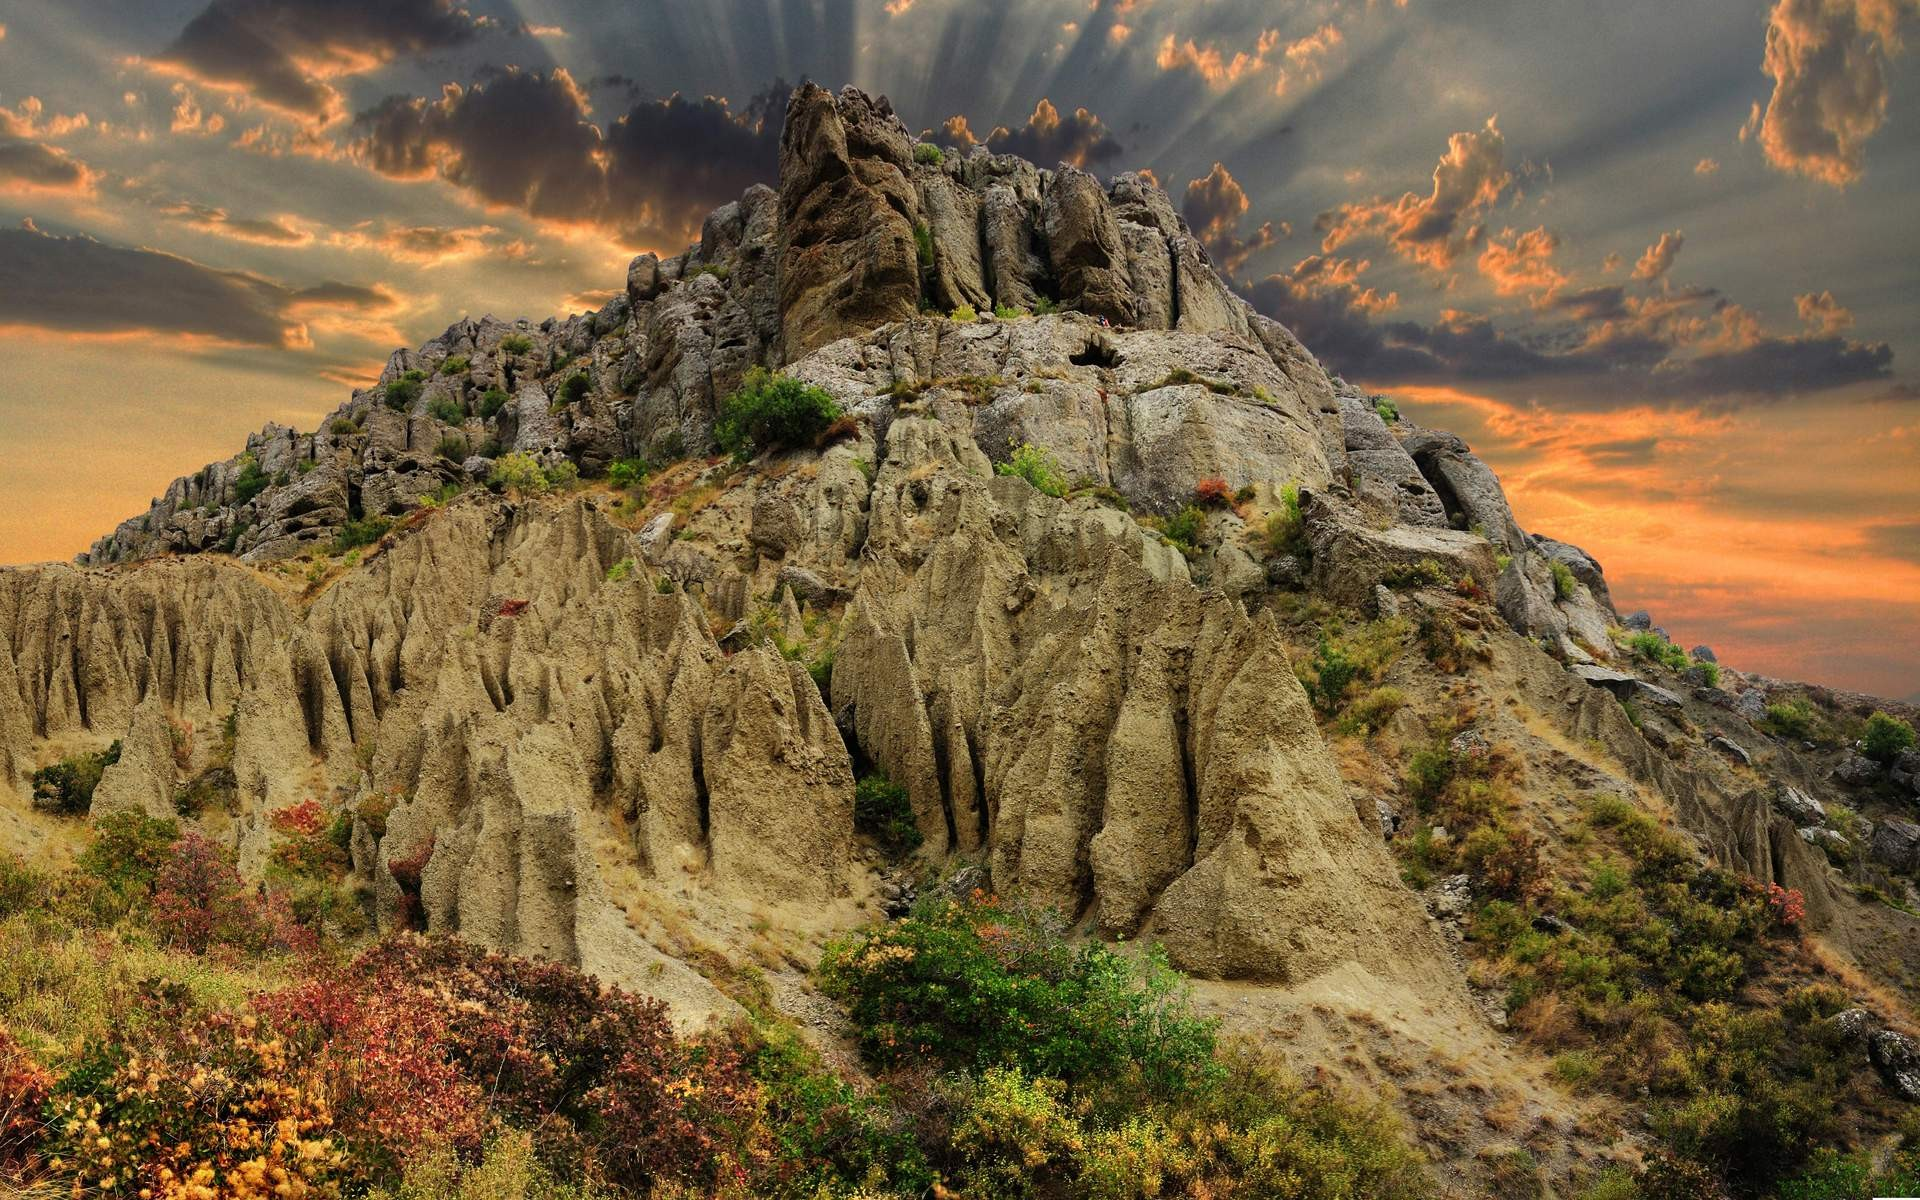 Photography Background Wallpapers: HDR Full HD Wallpaper And Background